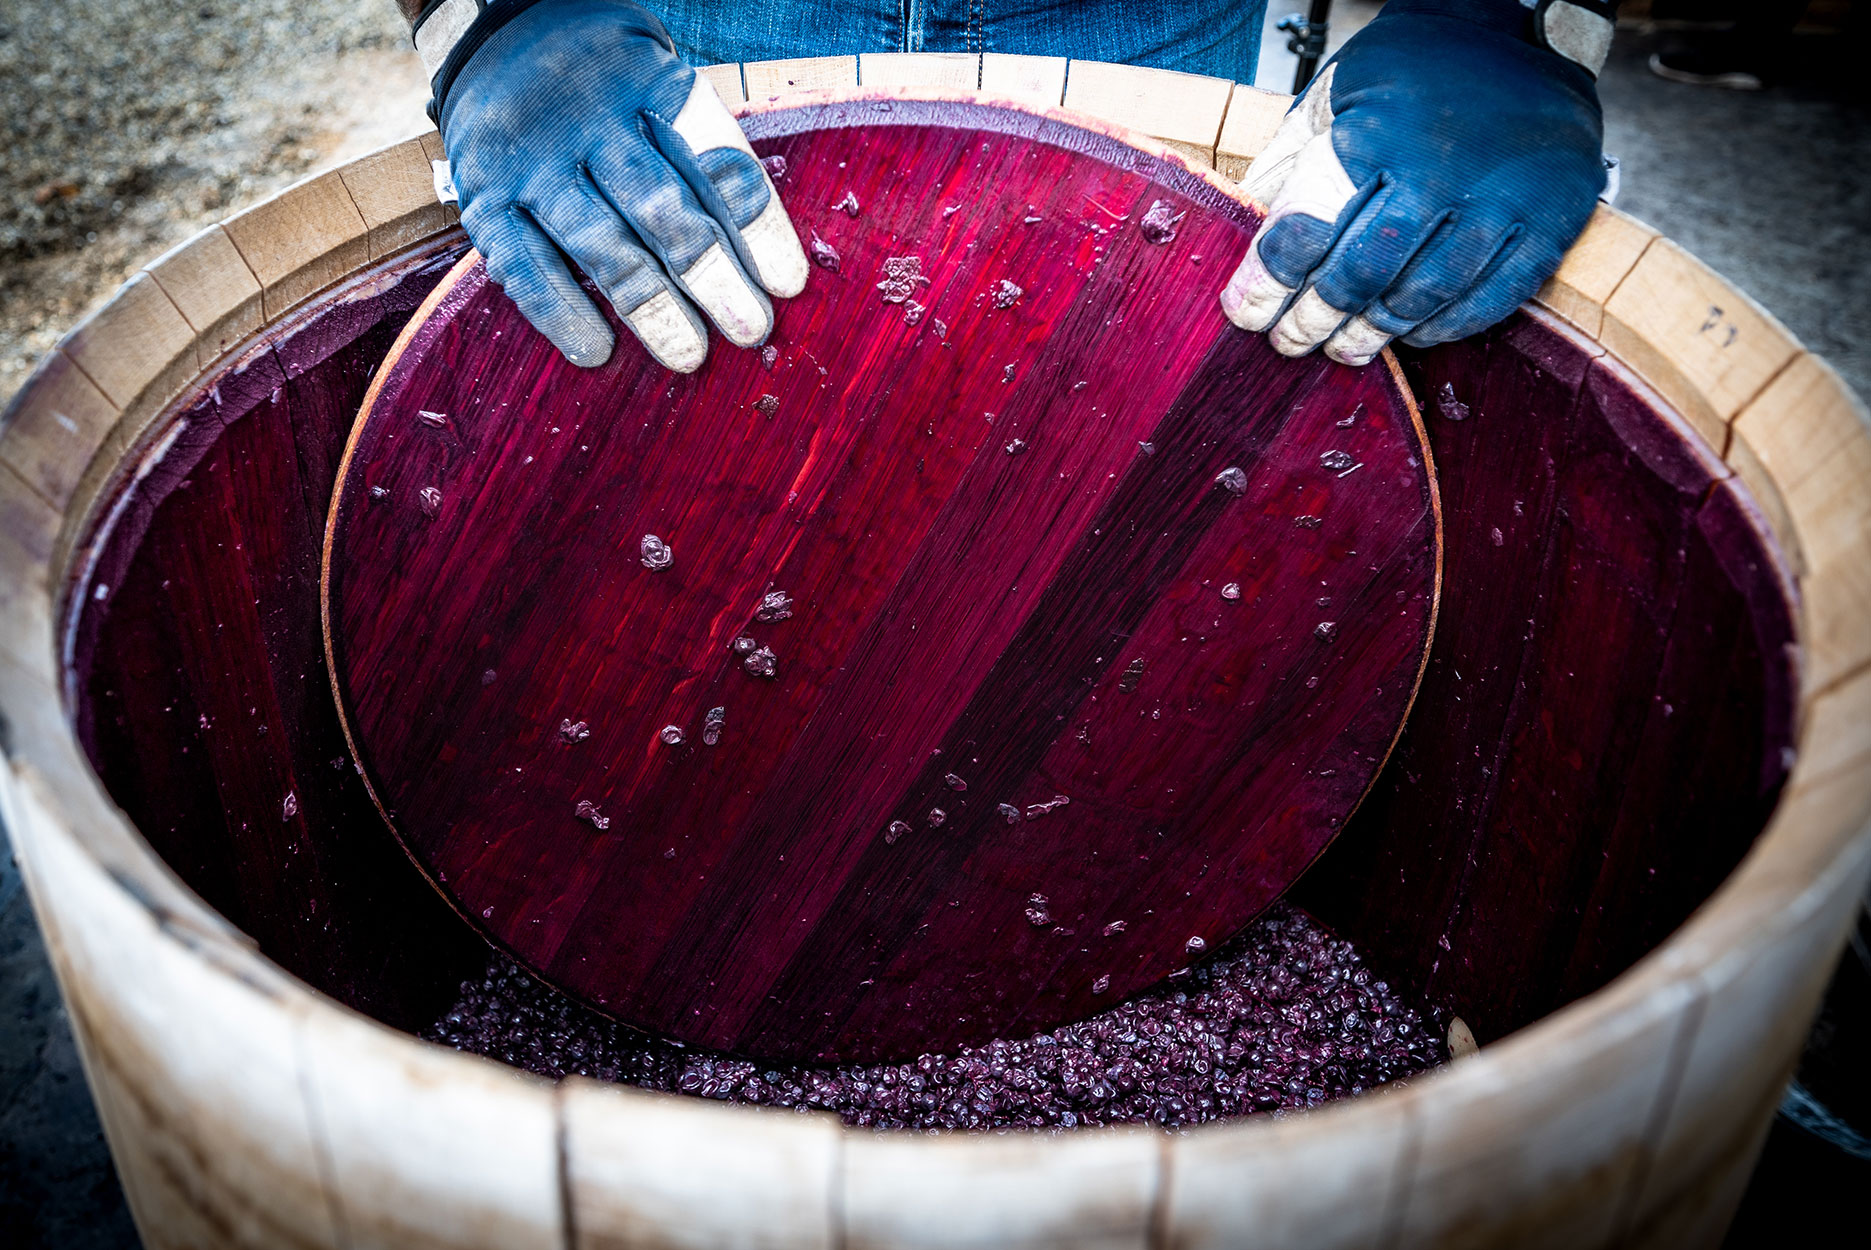 Wine mixing during fermentation process in barrel, Bordeaux Vineyard